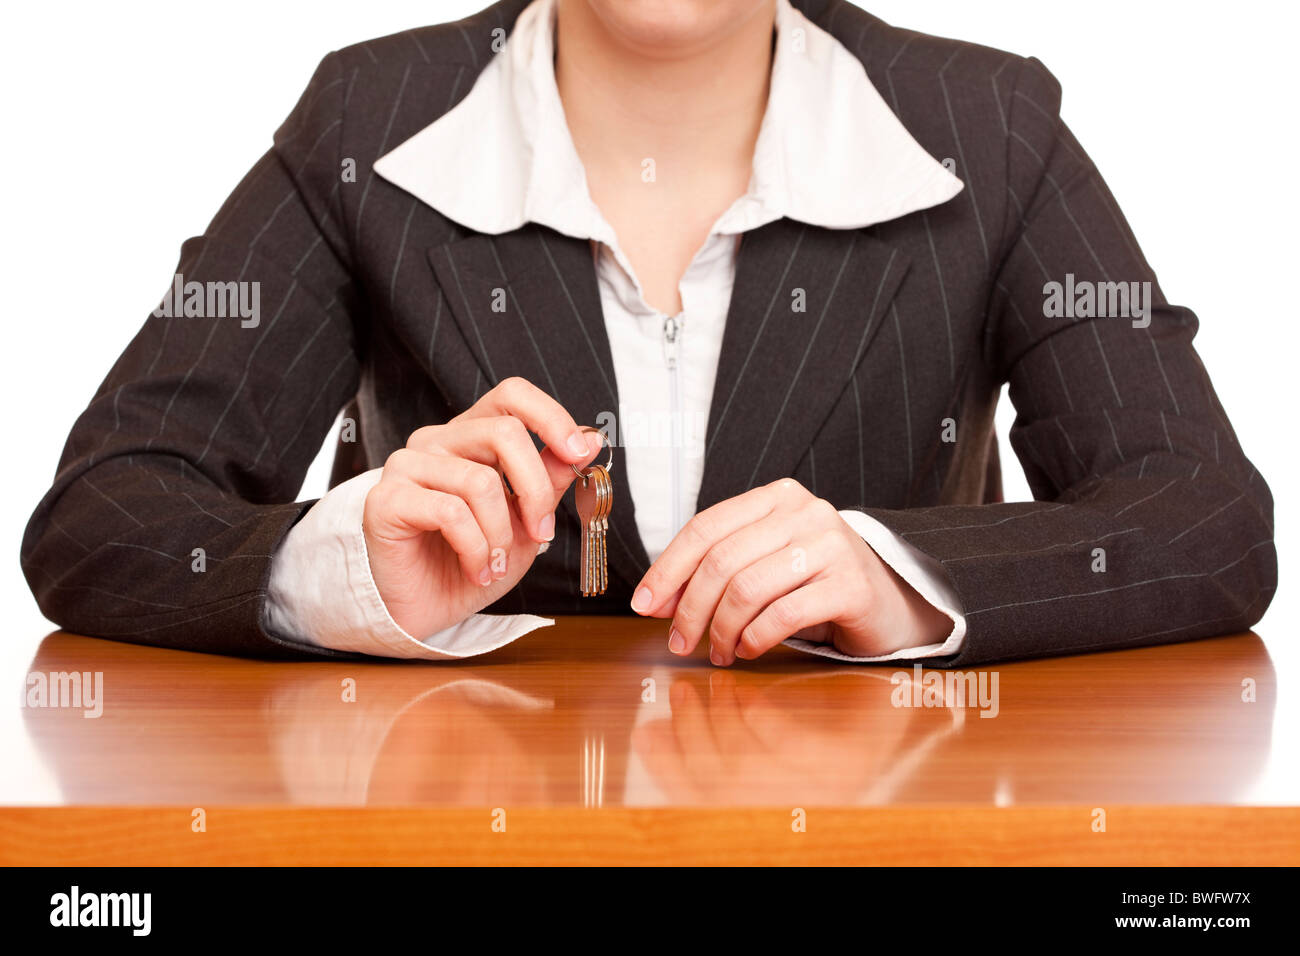 Business woman holds house key for handing over of keys. Isolated on white background. - Stock Image